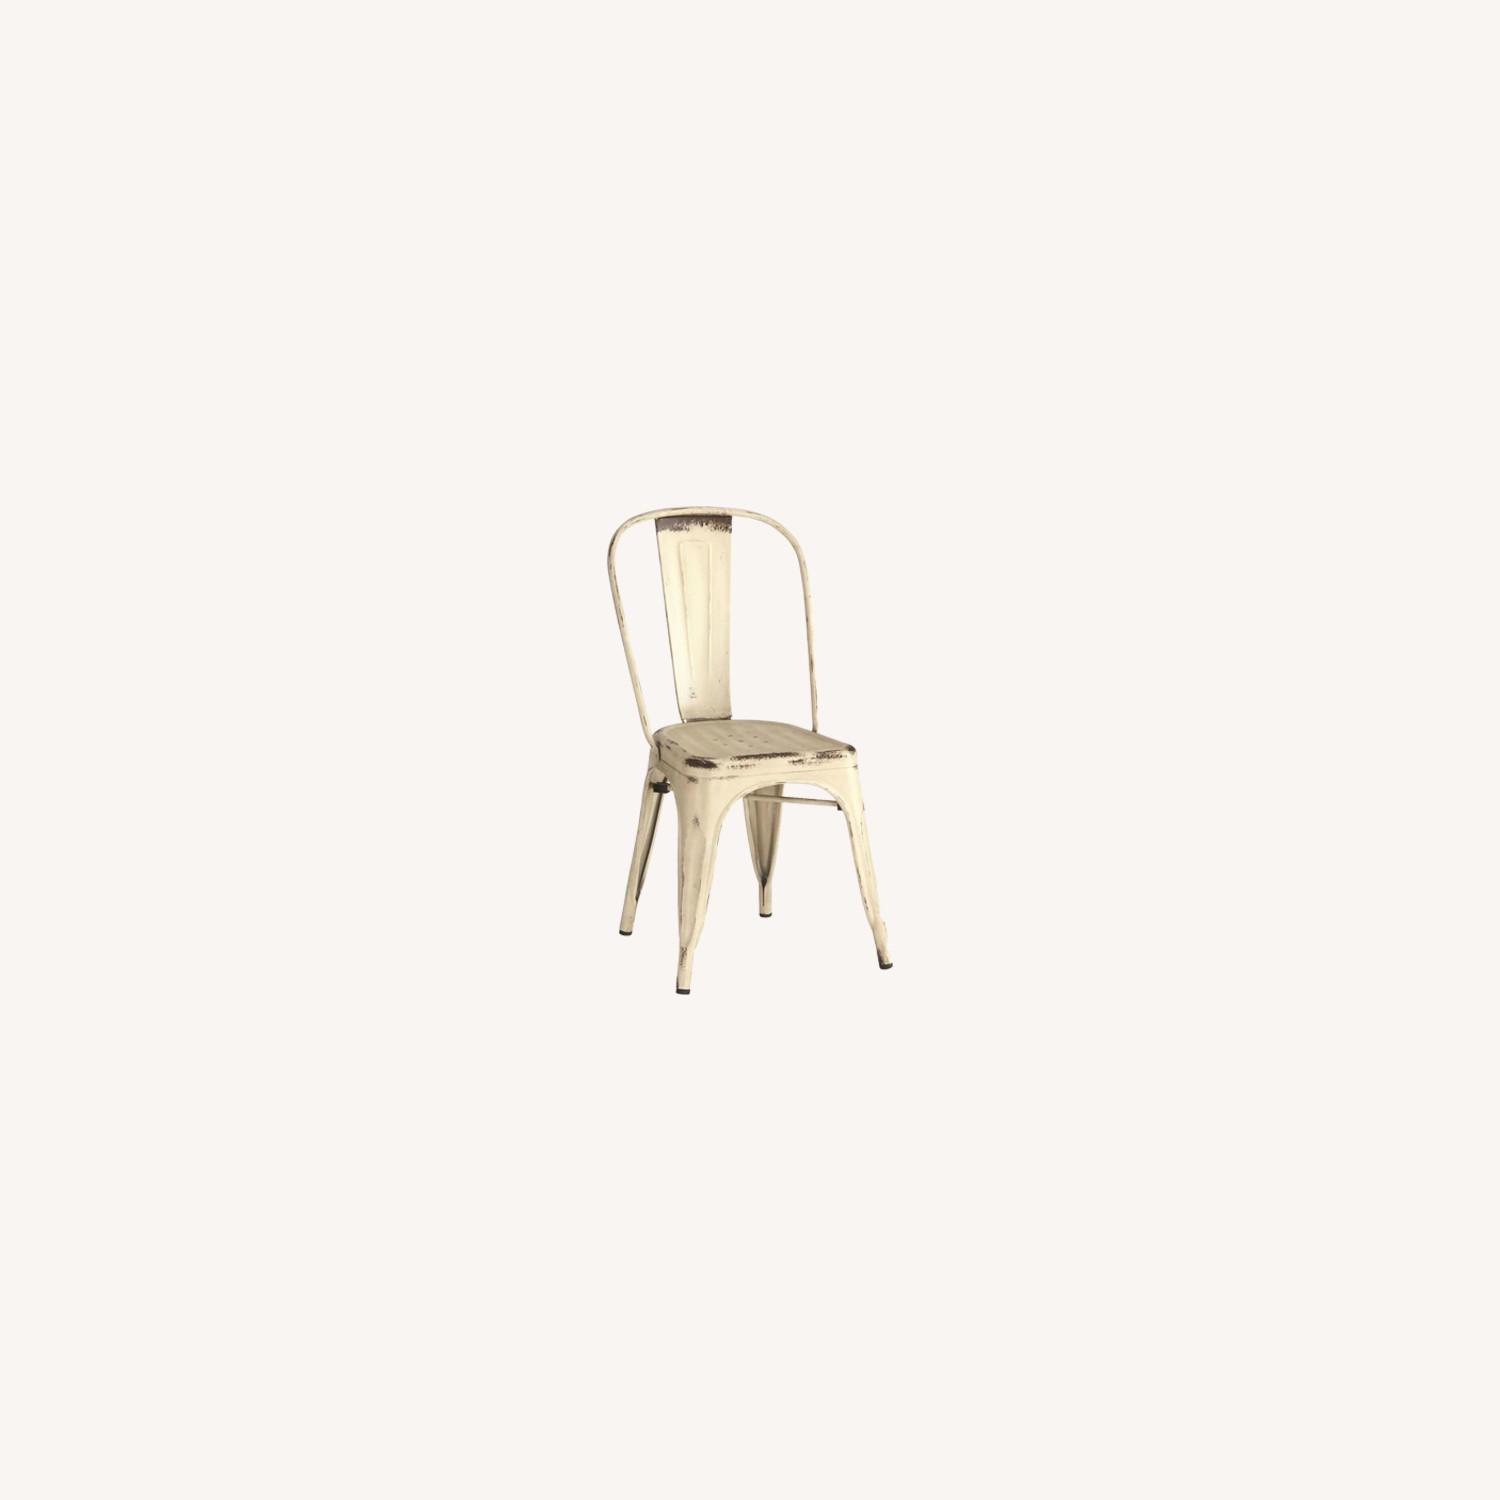 Modern Industrial Dining Chair In White Metal - image-4